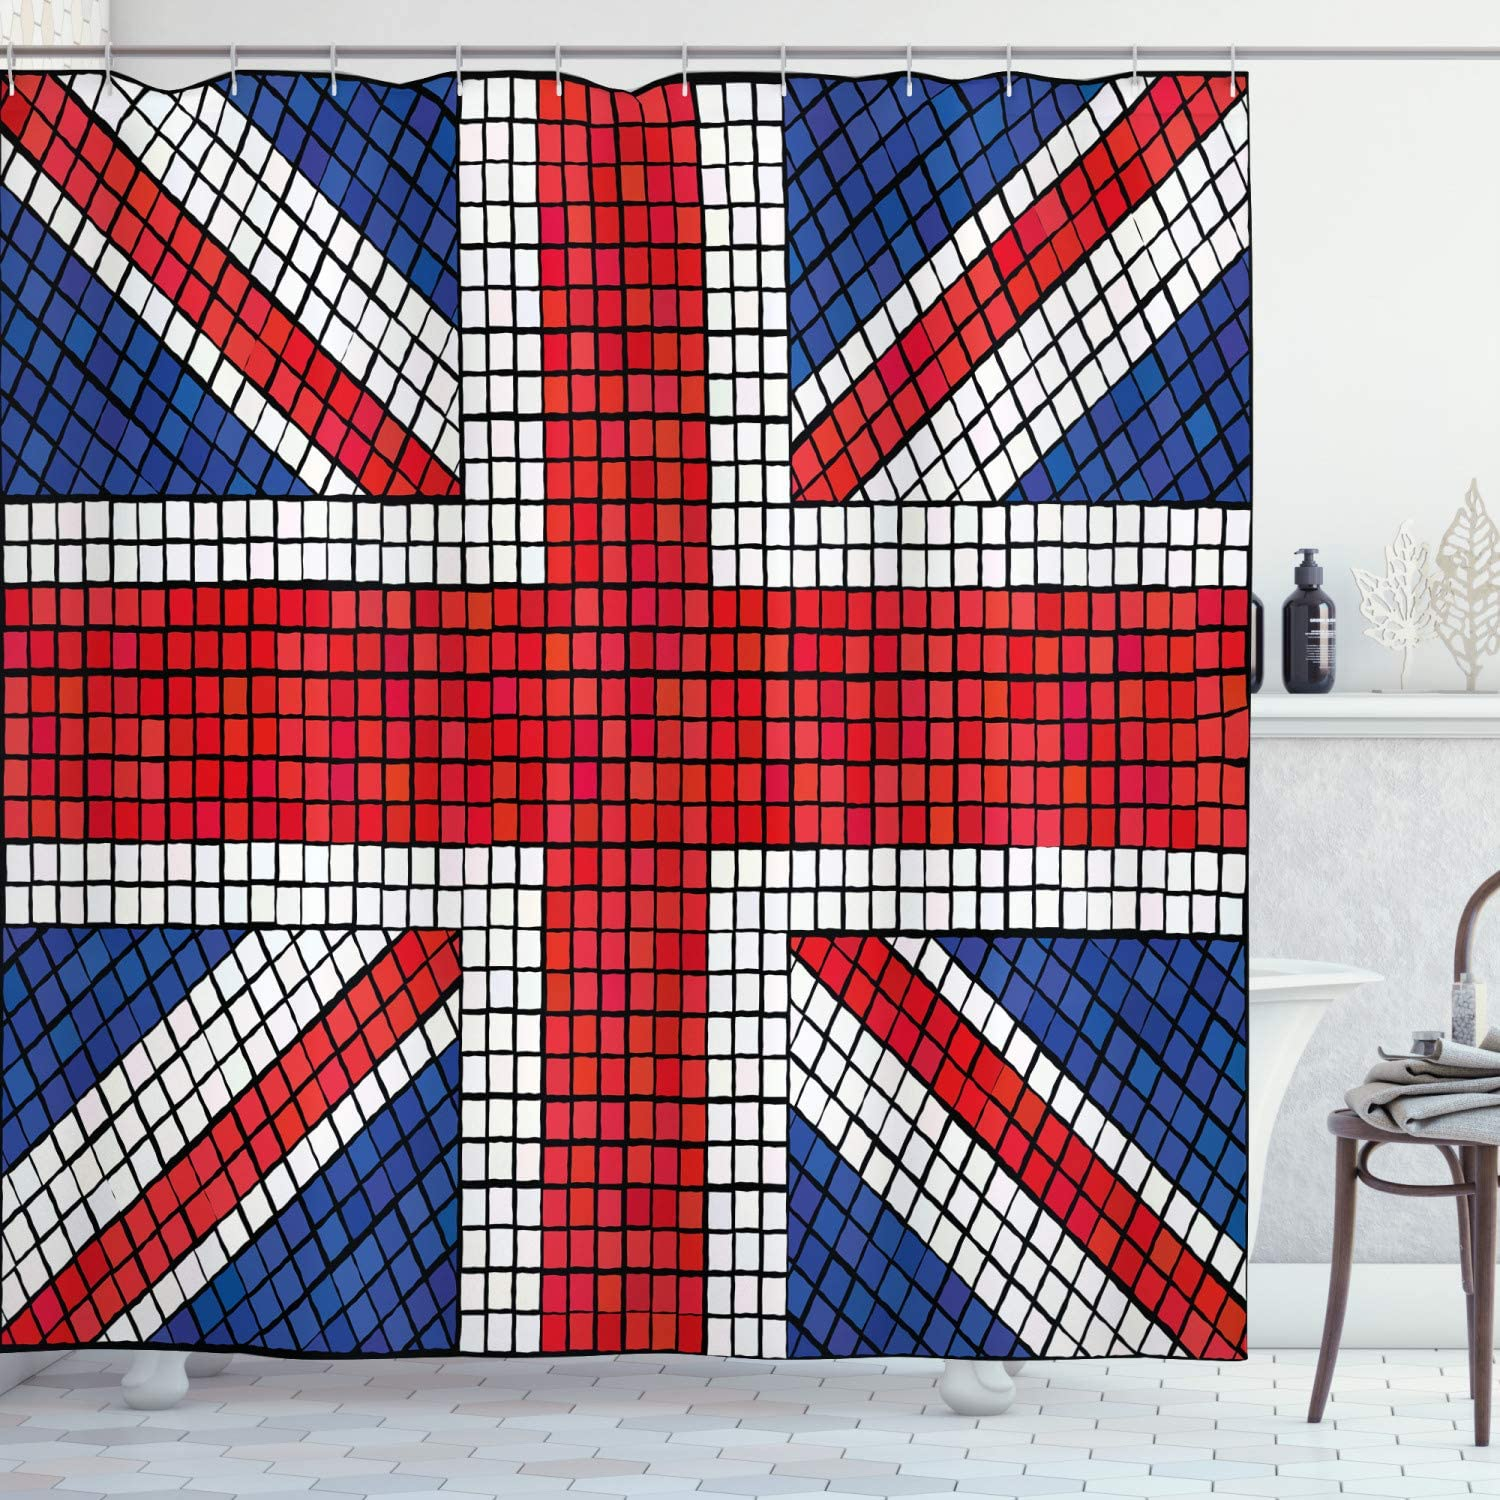 Amazon Com Ambesonne Union Jack Shower Curtain Mosaic Tiles Inspired Design British Flag National Identity Culture Fabric Bathroom Decor Set With Hooks 70 Long Royal Blue Red White Home Kitchen